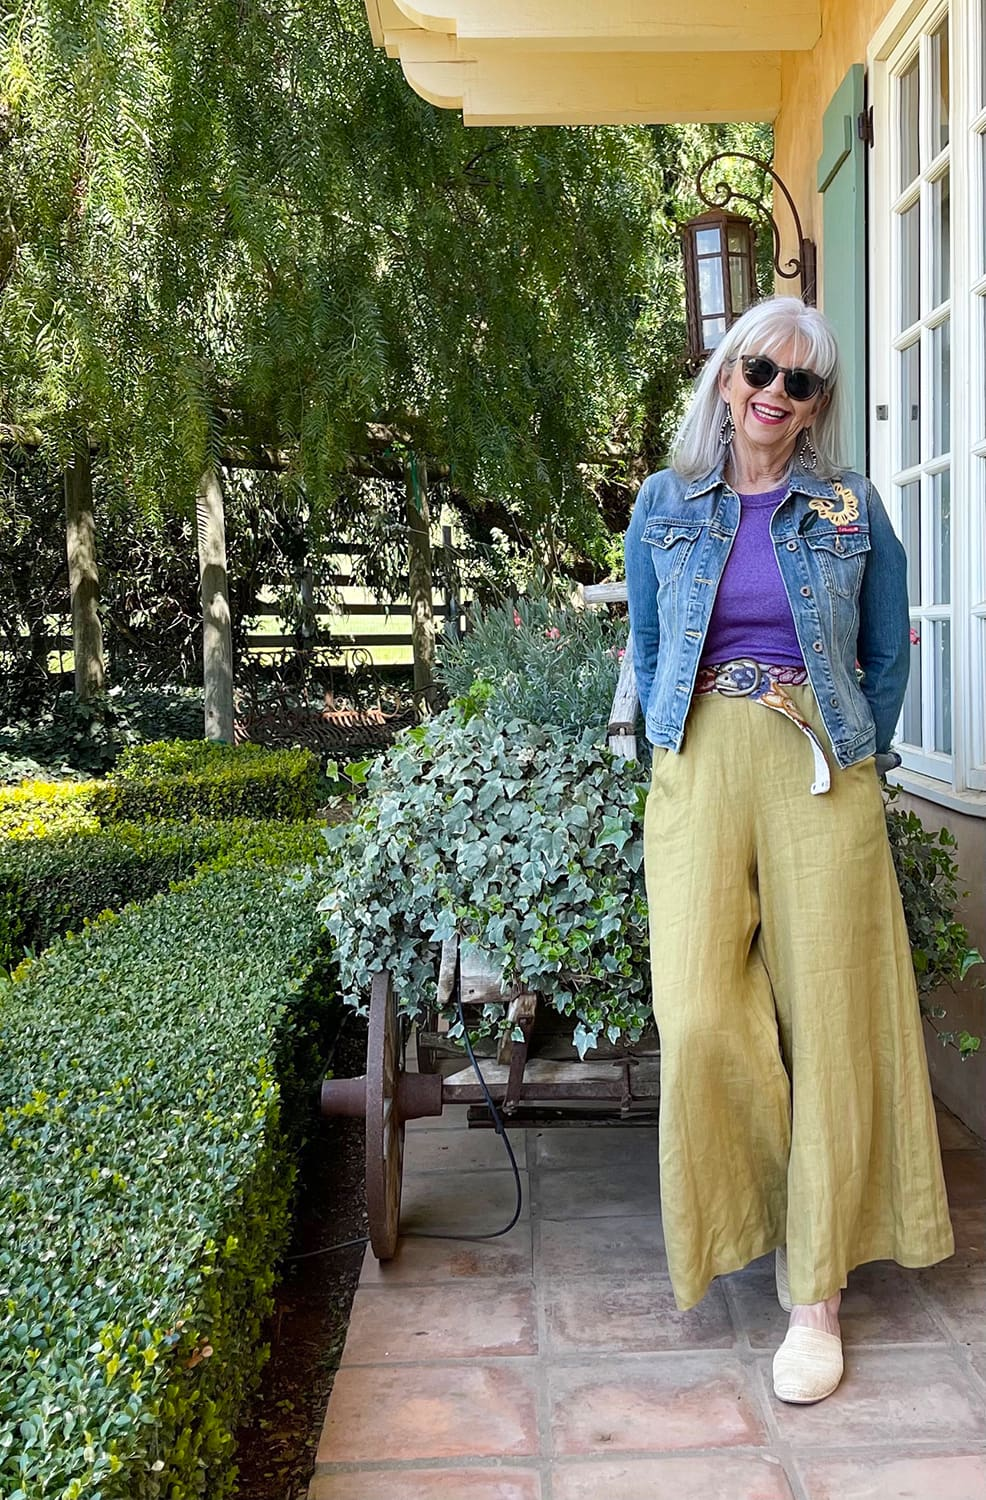 cindy hattersley in cp shades, michael stars and lucky brand jean jacket